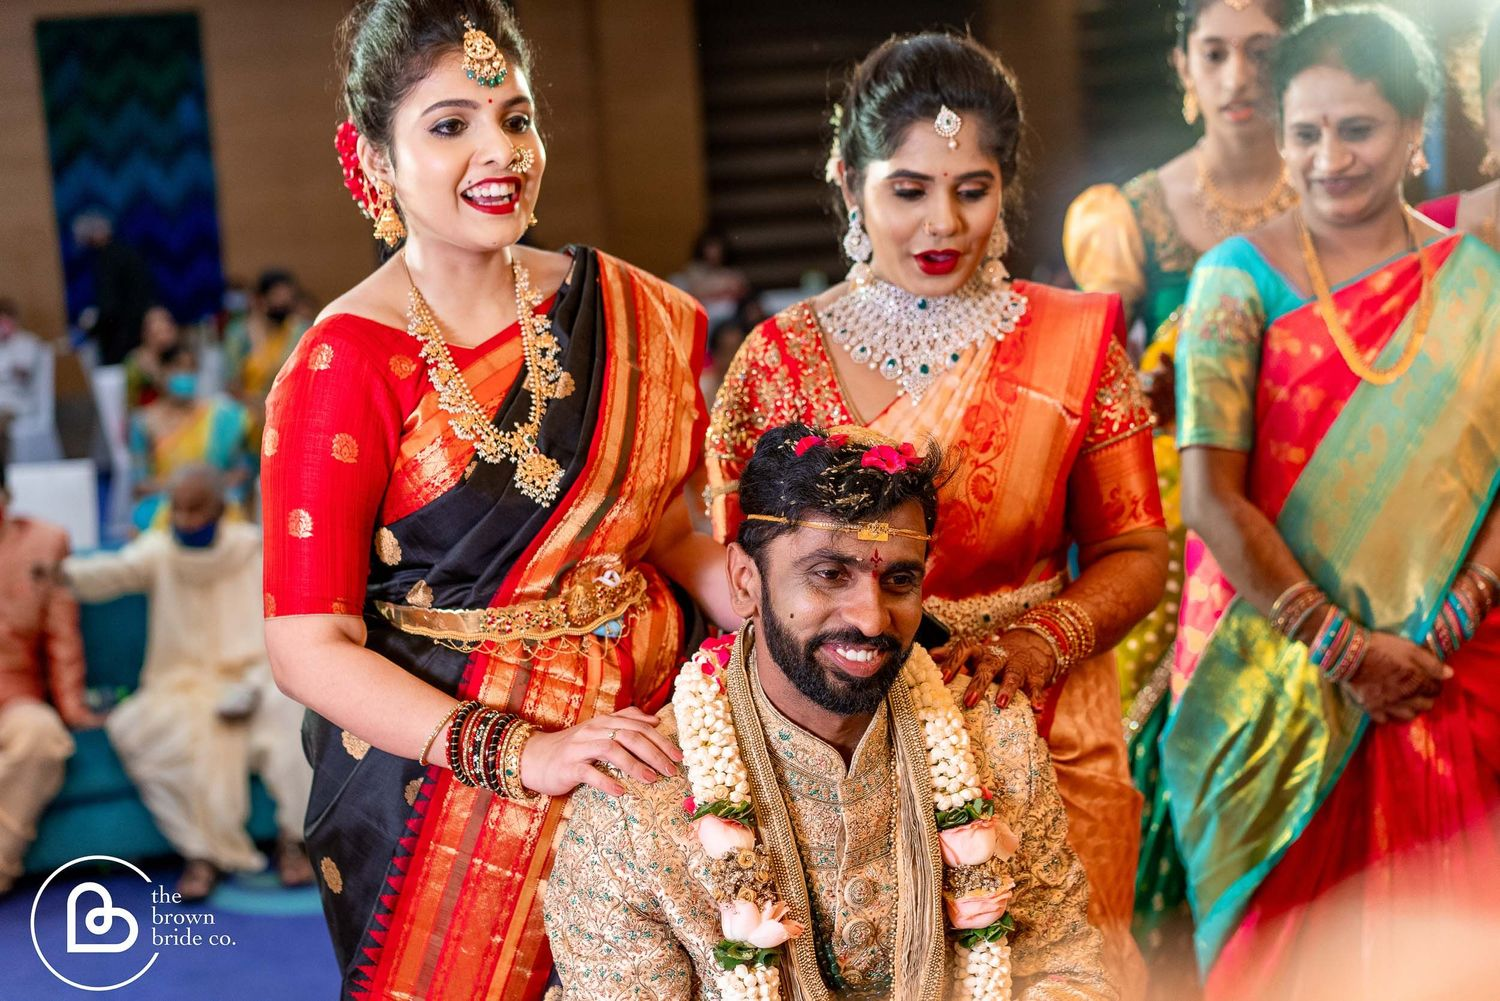 wedding in hyderabad | groom with family wedding photo shoot, professional photography in hyderabad